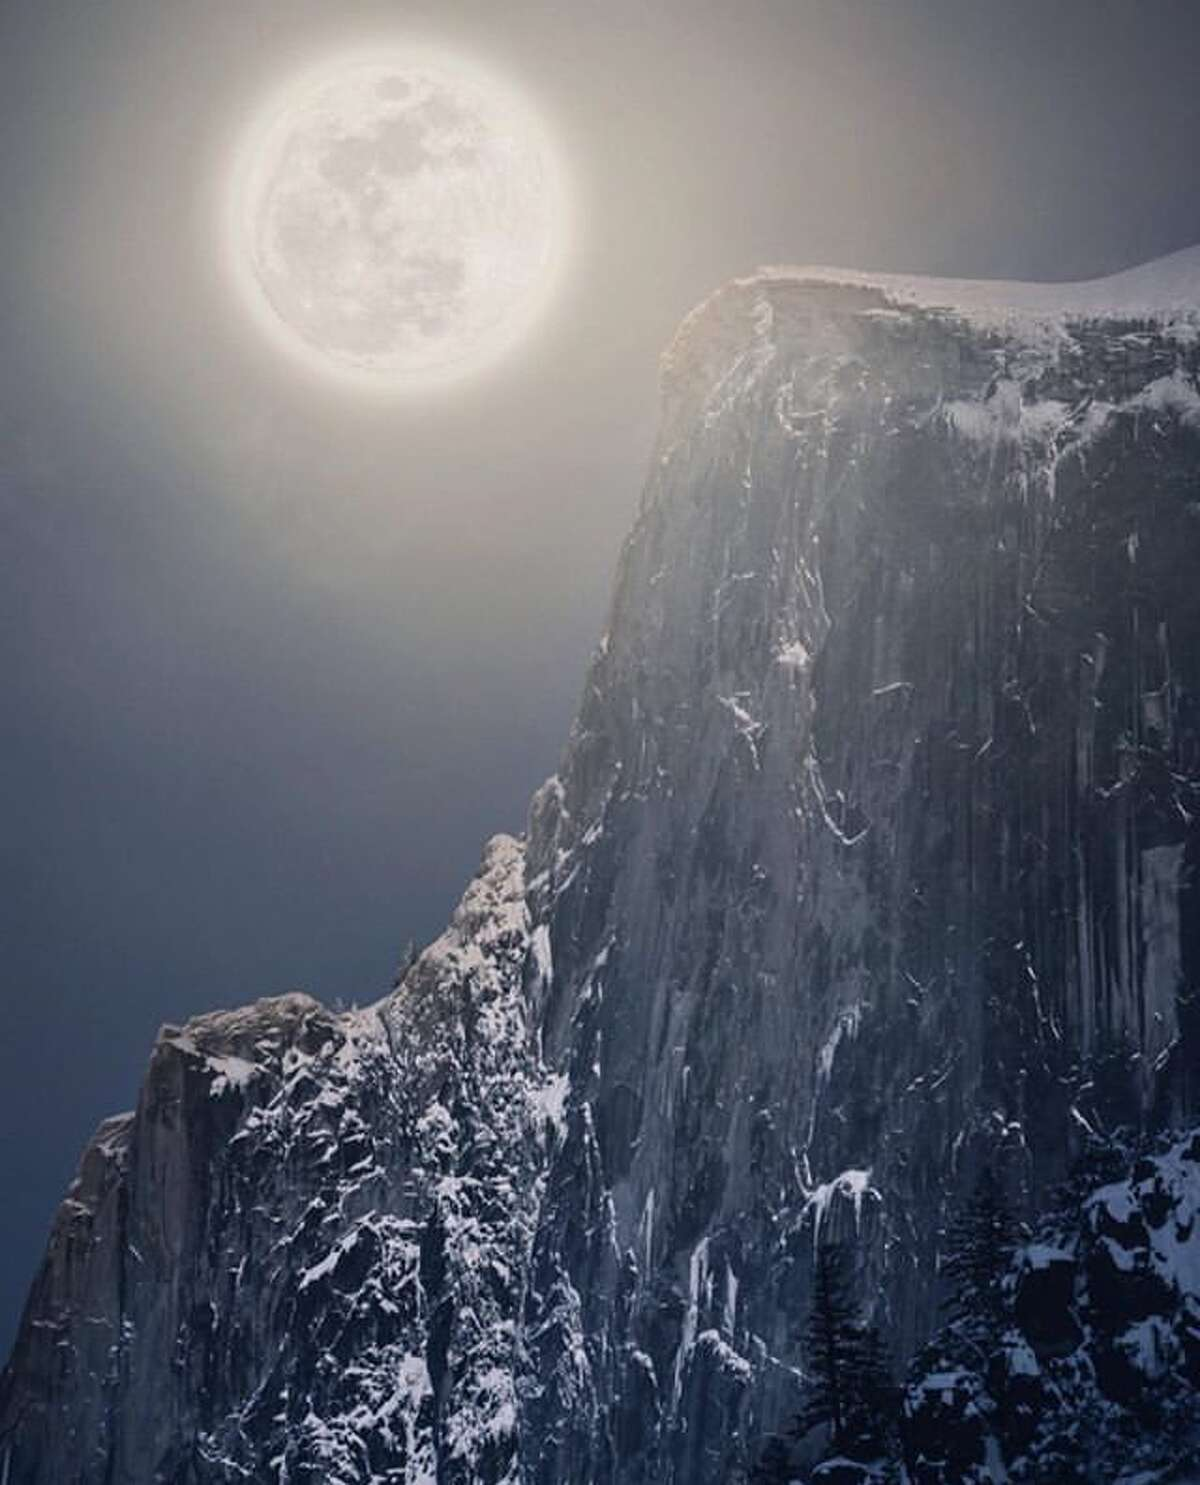 @lylin0717 had to stand in waist-deep snow in Yosmeite to compose this image of the Supermoon.